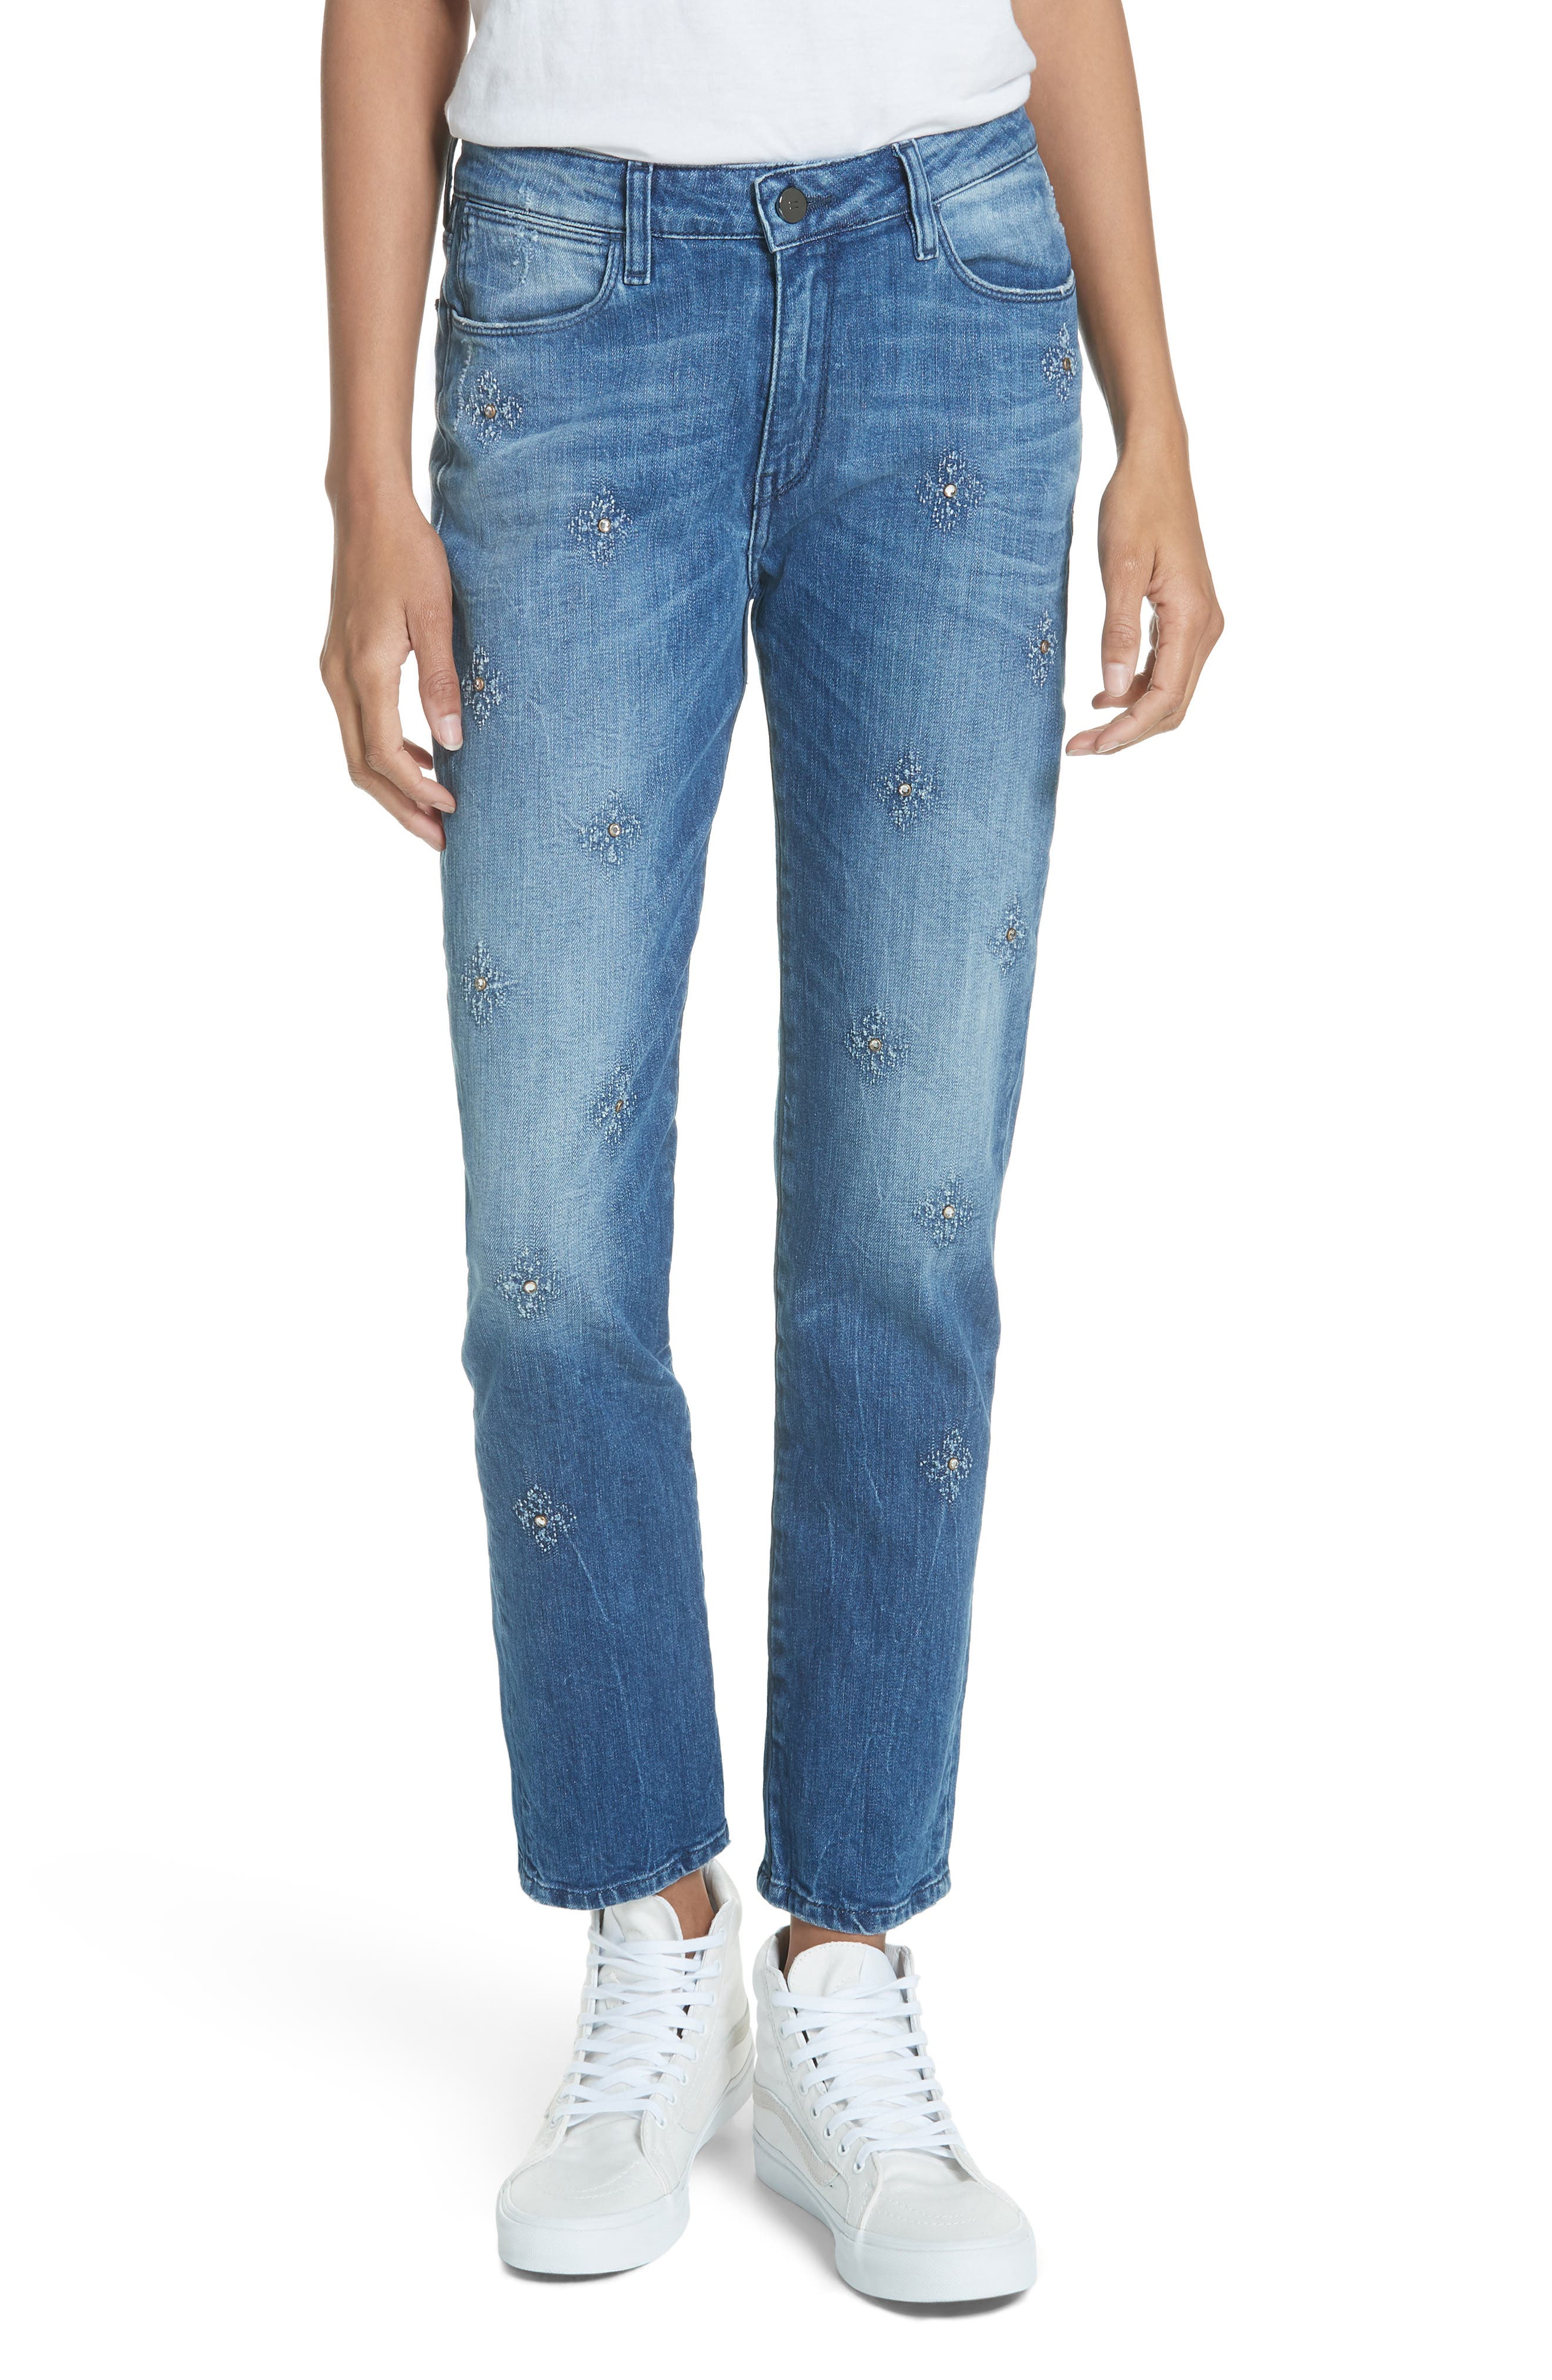 BROCKENBOW Orphee Jeweled Slim Straight Jeans in Tokyo Blue